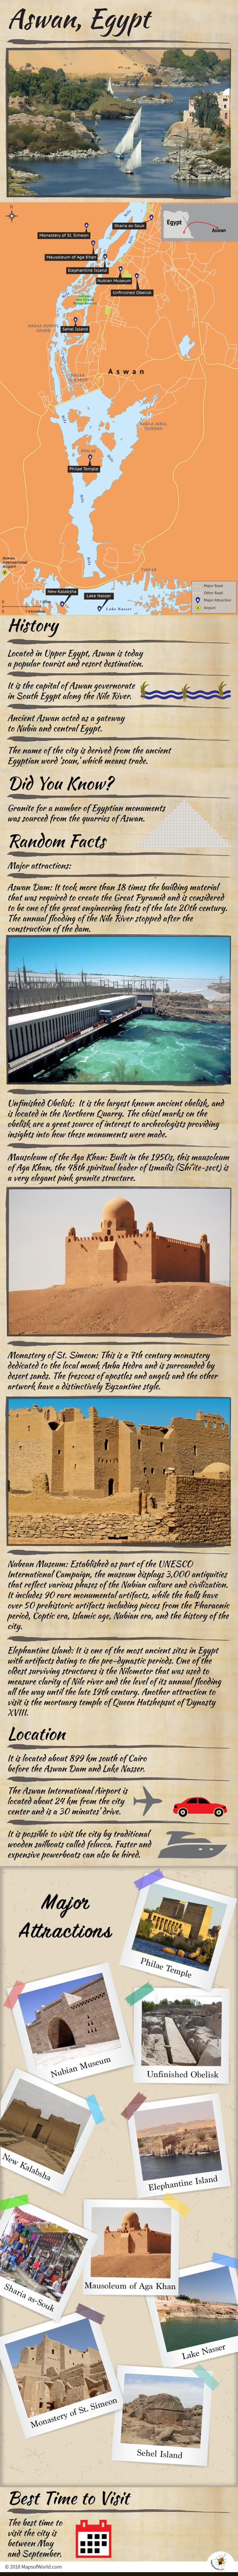 Infographic Depicting Aswan Tourist Attractions